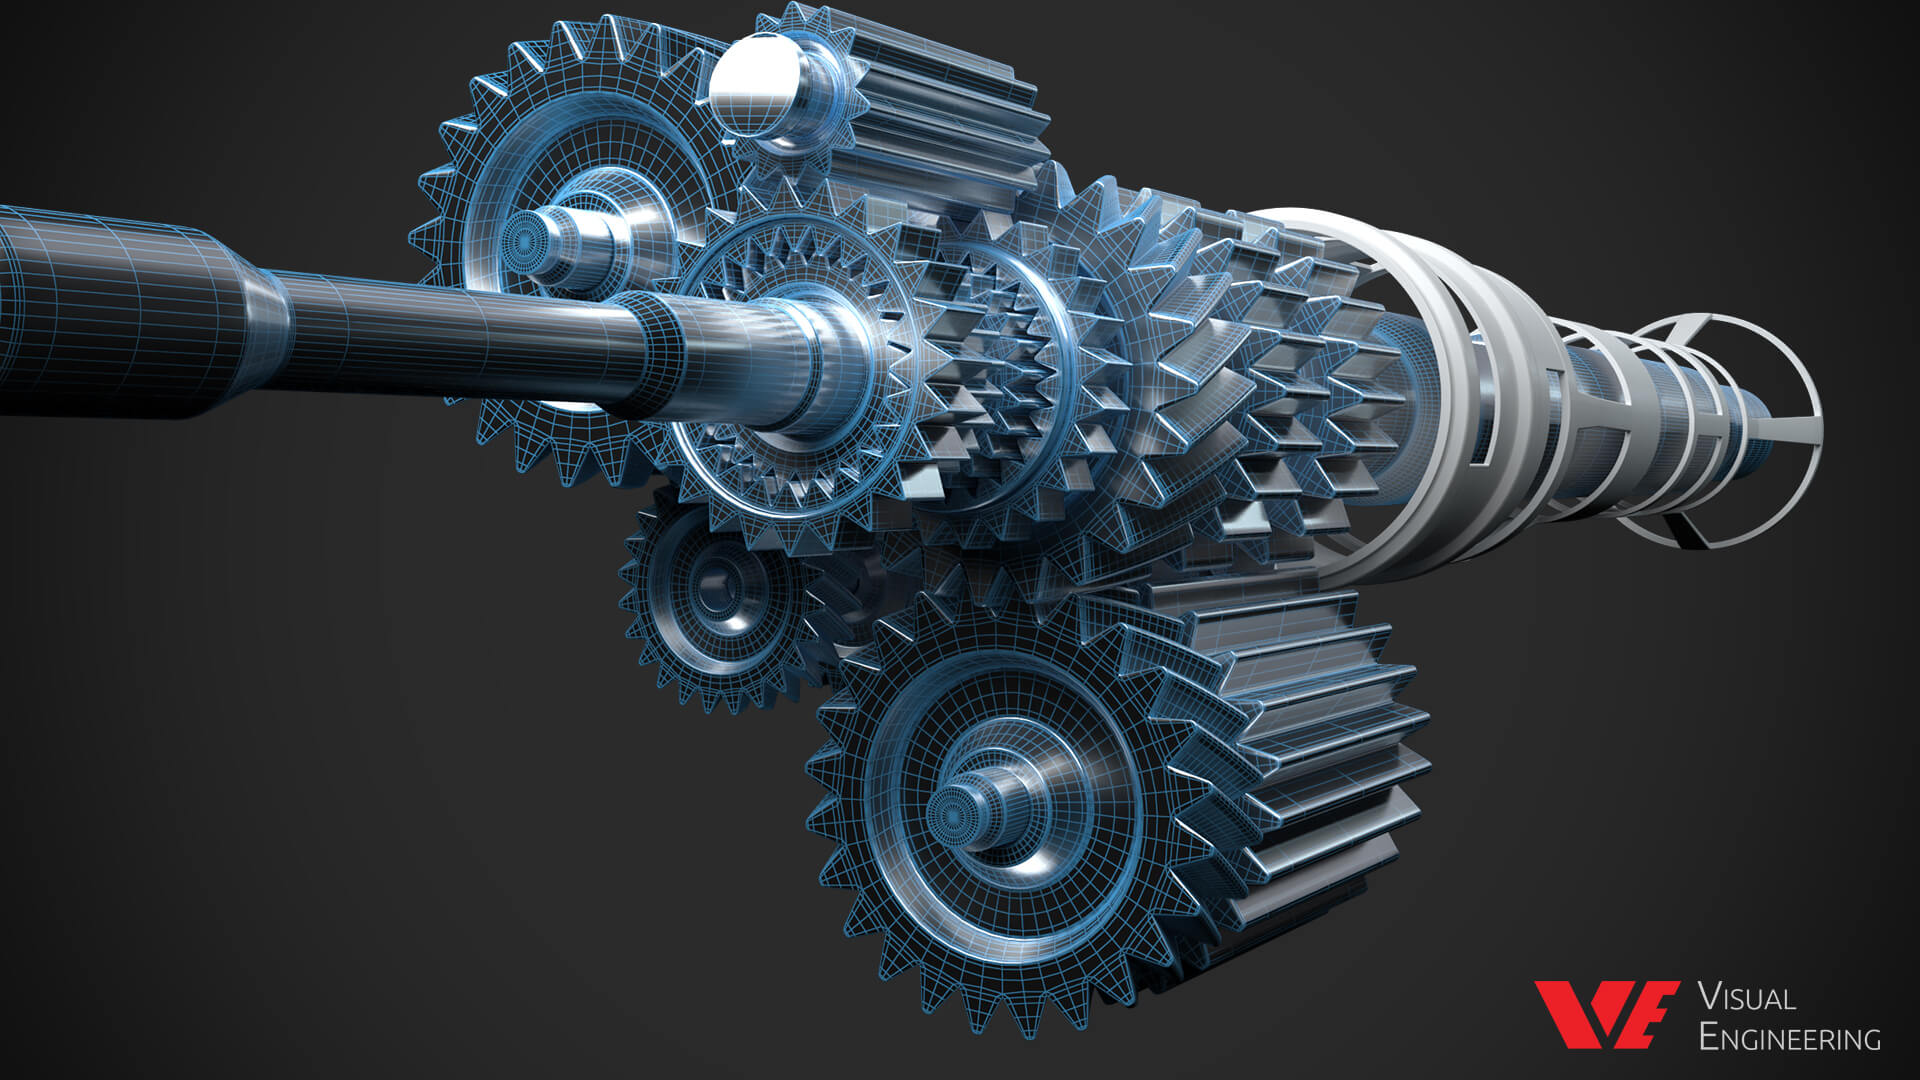 VE-Home-OurWorks-Gearbox_1-1920px-001 Our Work